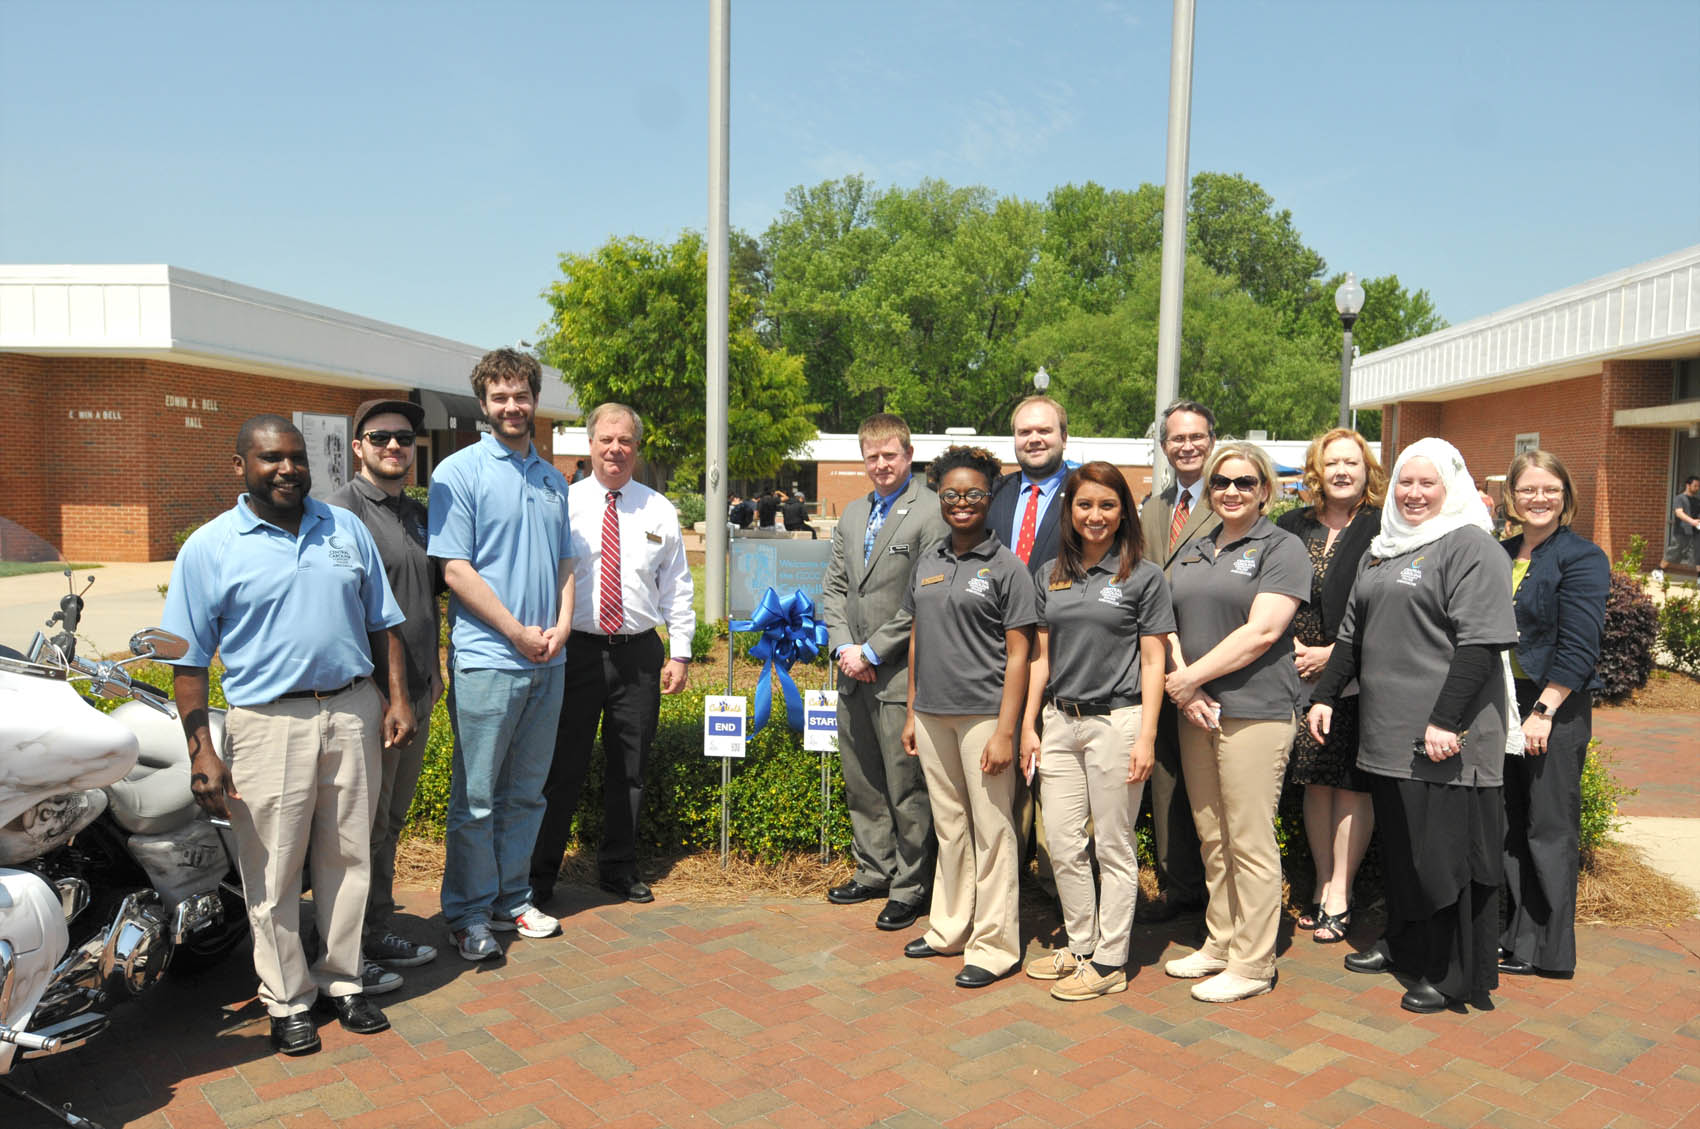 Click to enlarge,  Central Carolina Community College administrative and student leaders assembled on Wednesday, April 20, for the dedication of the new CCCC Cat Walk. The Cat Walk is a one-mile walking trail throughout the CCCC Lee County Campus. Each summer, the CCCC Student Ambassadors participate in a leadership development and team building class. The 2015-2016 Ambassadors wanted their project to benefit the entire campus community, and decided that this year's project would be to design, implement, and maintain a walking trail at the Lee Campus. Students who participate in physical education classes will be able to utilize the trail as well. The trail begins near the flagpoles, where a large map of the trail is located. The trail is a little less than a mile, and is marked by signs with the Cat Walk insignia on them that identify the -mile and - mile marks, trail direction, and start/end points. Each sign has a QR code that can be scanned with a smartphone, which shows a map of the trail. Student Ambassadors are Megan Blair, Cris Contreras, Christian George, Chriss Harvin, Landis Johnson, Aaron Kovasckitz, Lacey Kuenzler, Rolander Mayo, David Pope III, and Sarah Shannon-Mohamed.